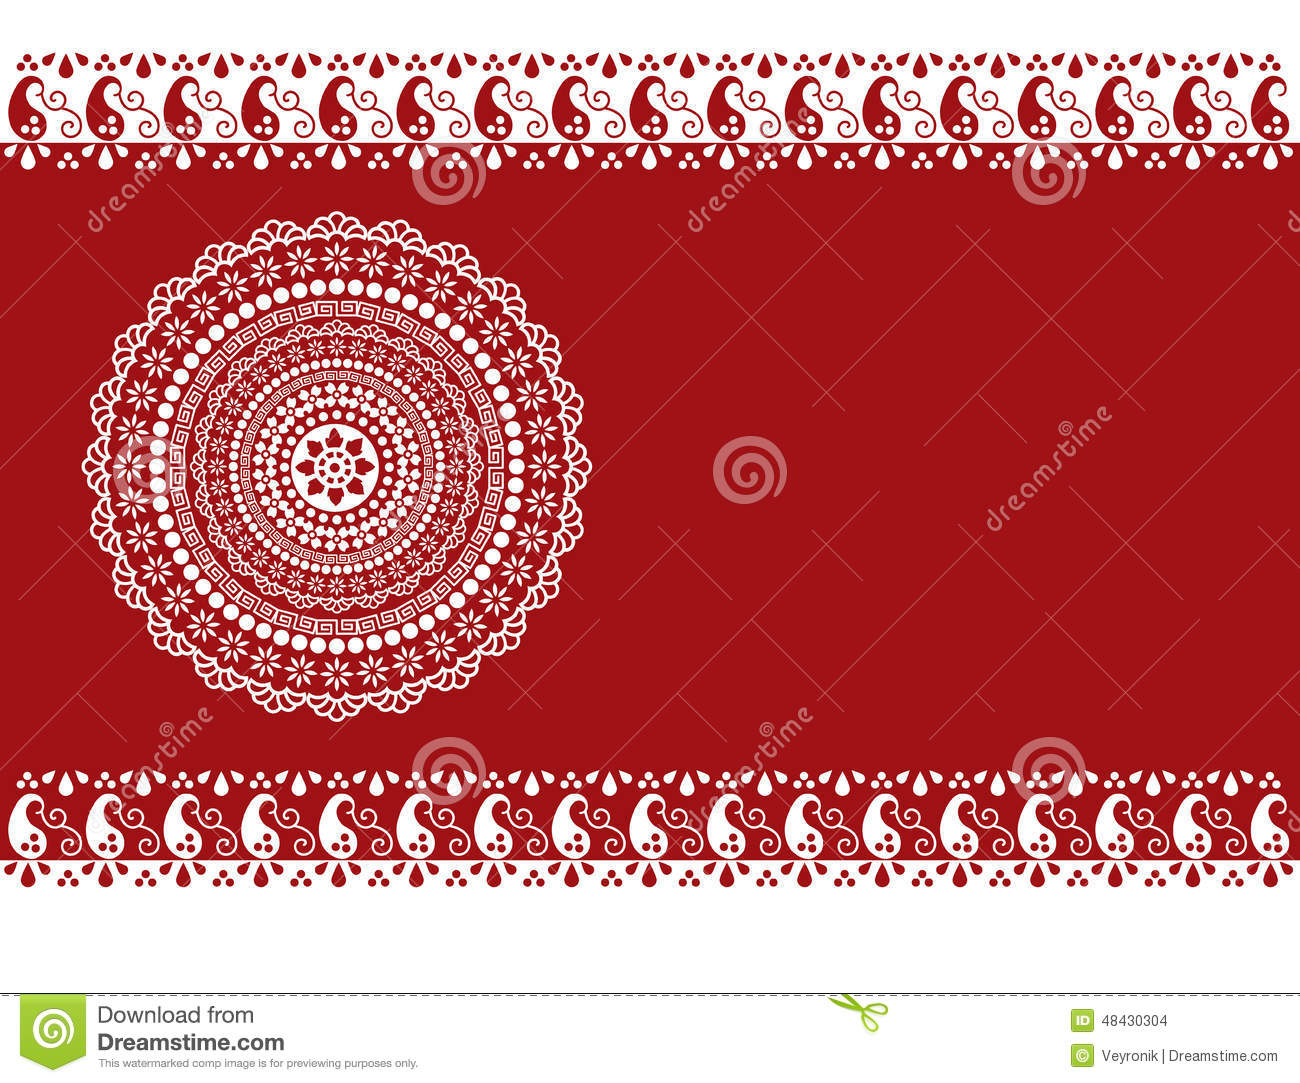 Image Result For Royalty Free Indian Classical Music Free Download